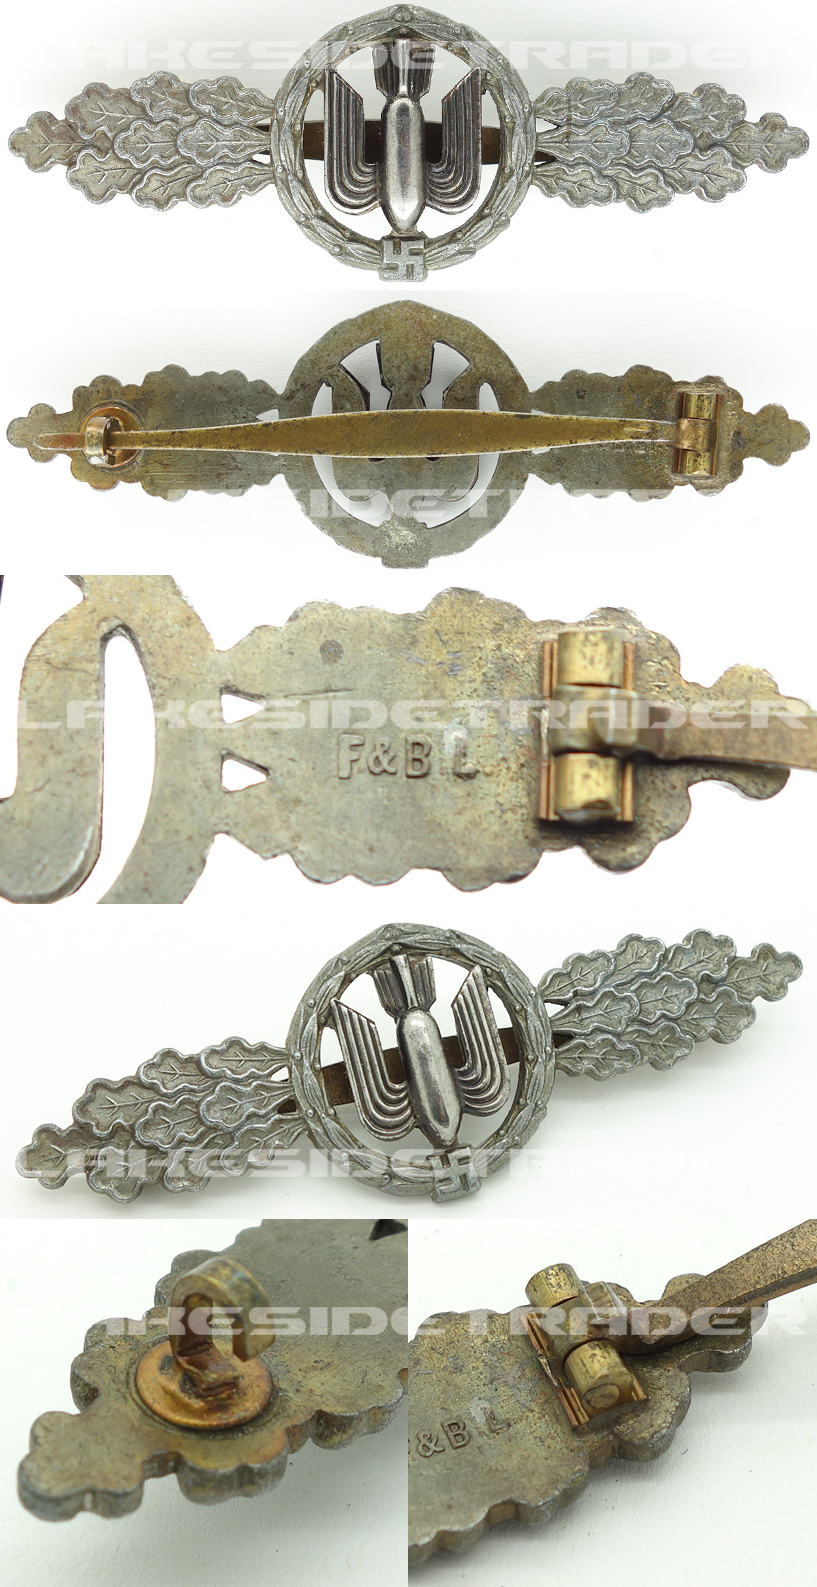 Luftwaffe Bomber Clasp in Bronze by F. Bruninghaus